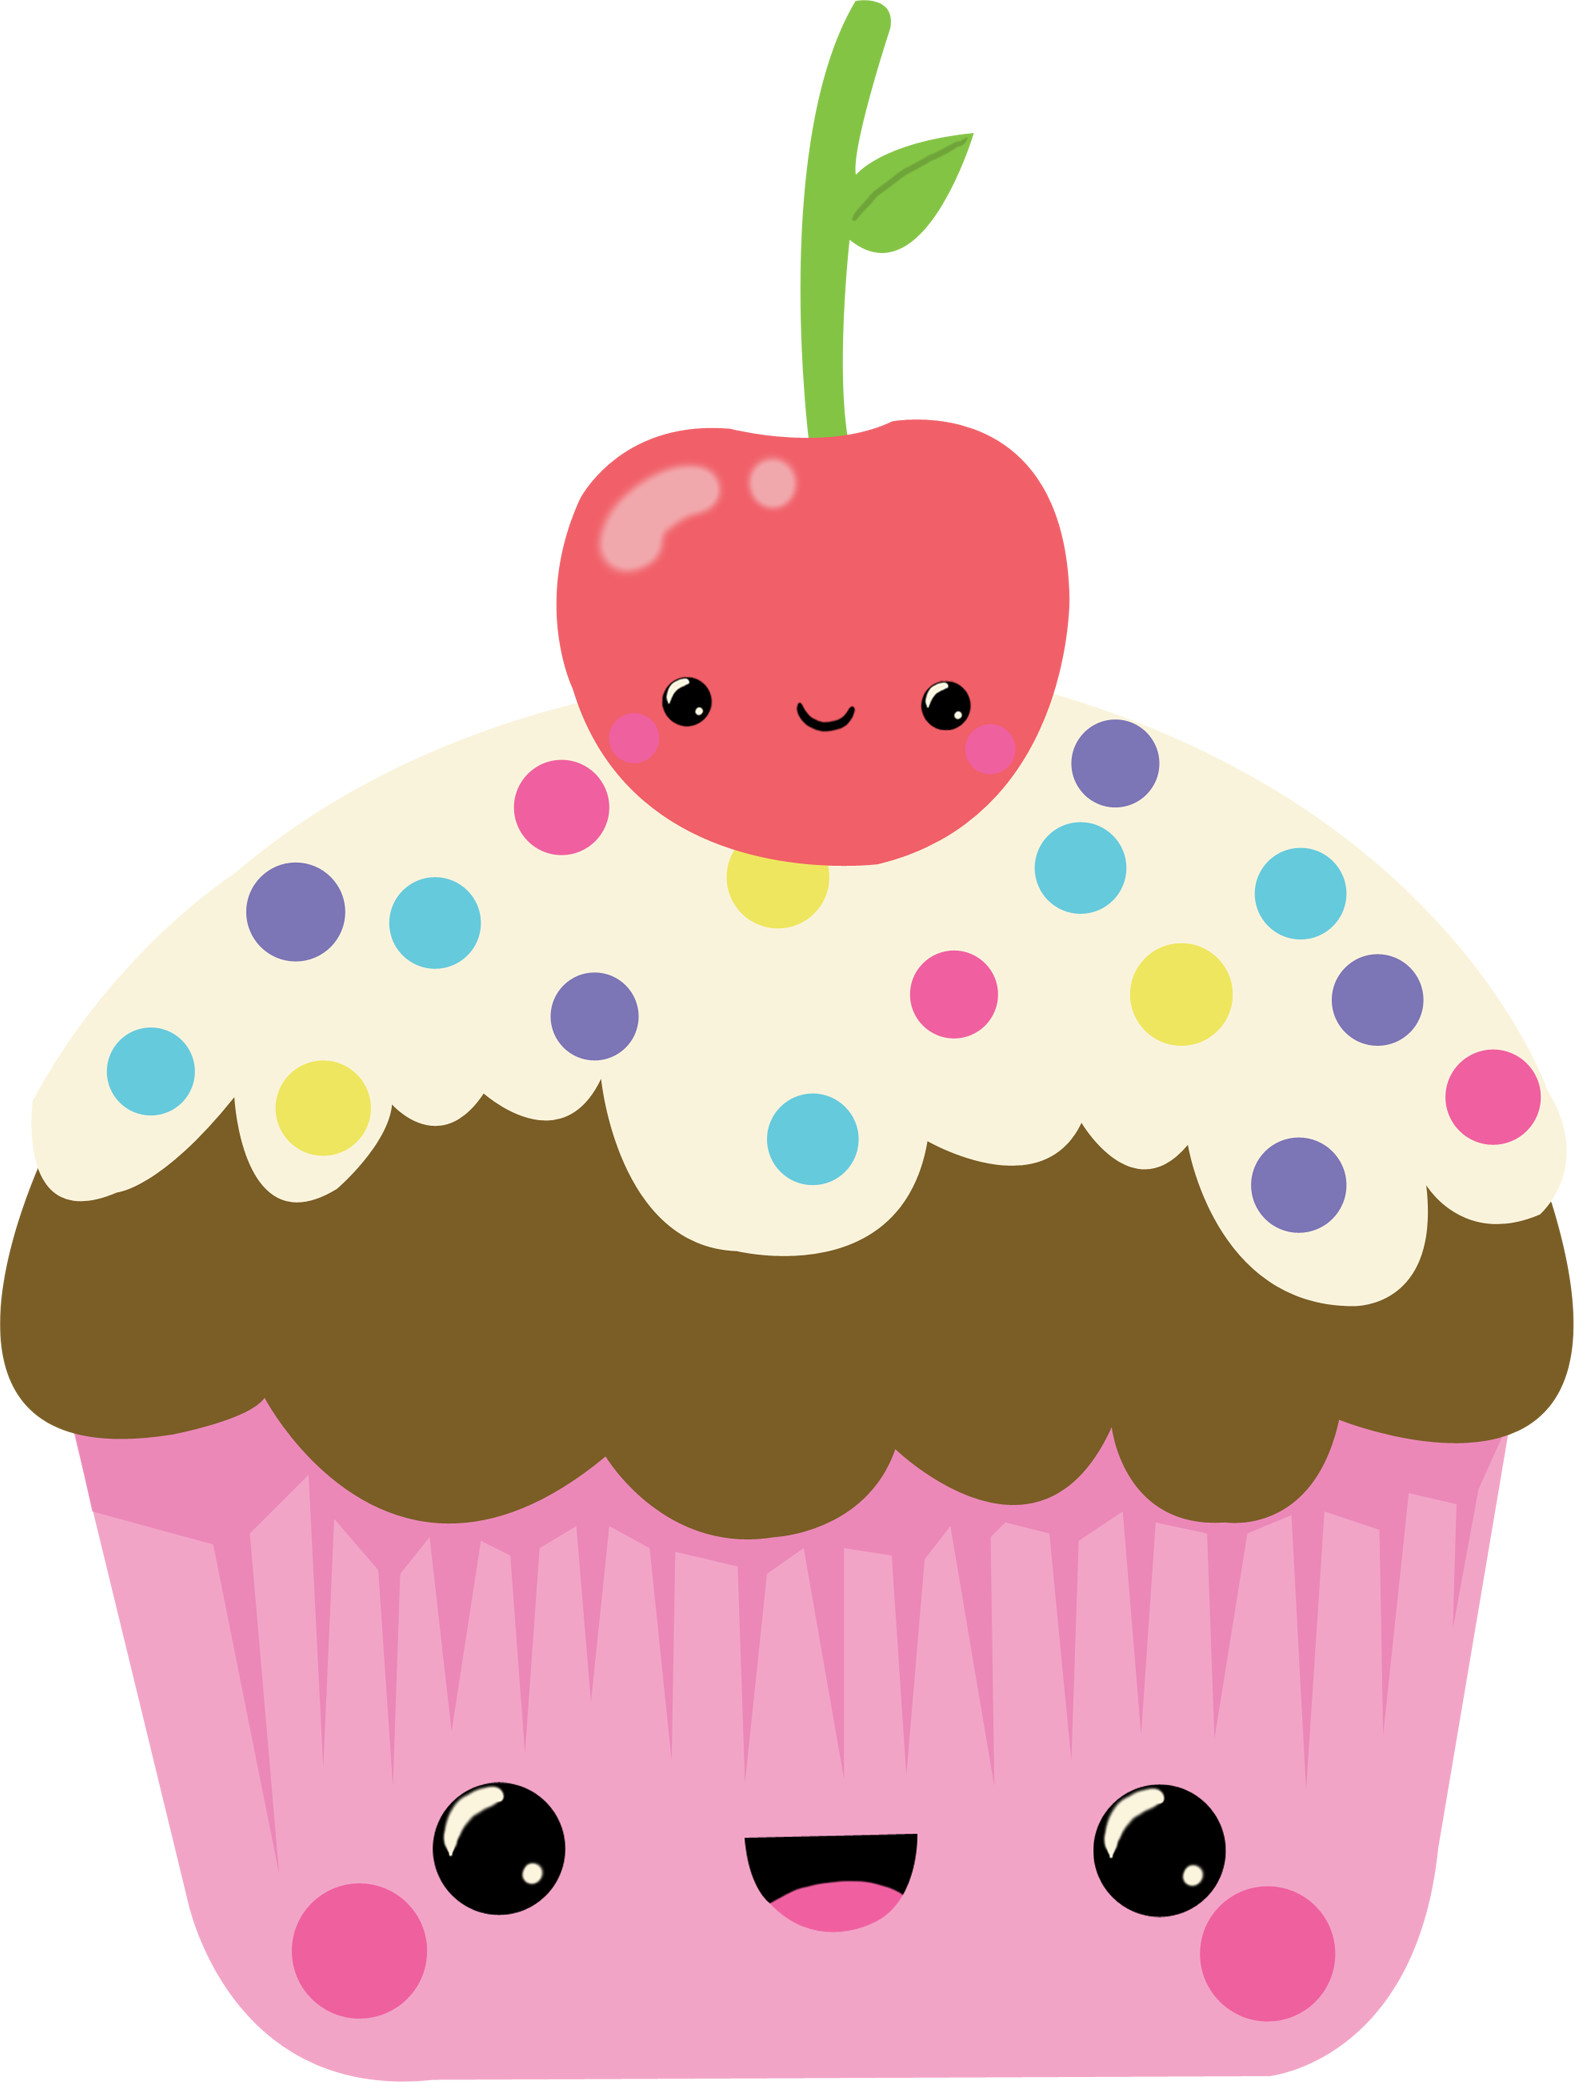 Res: 1574x2082, Birthday Cupcake Clipart | Free Download Clip Art | Free Clip Art